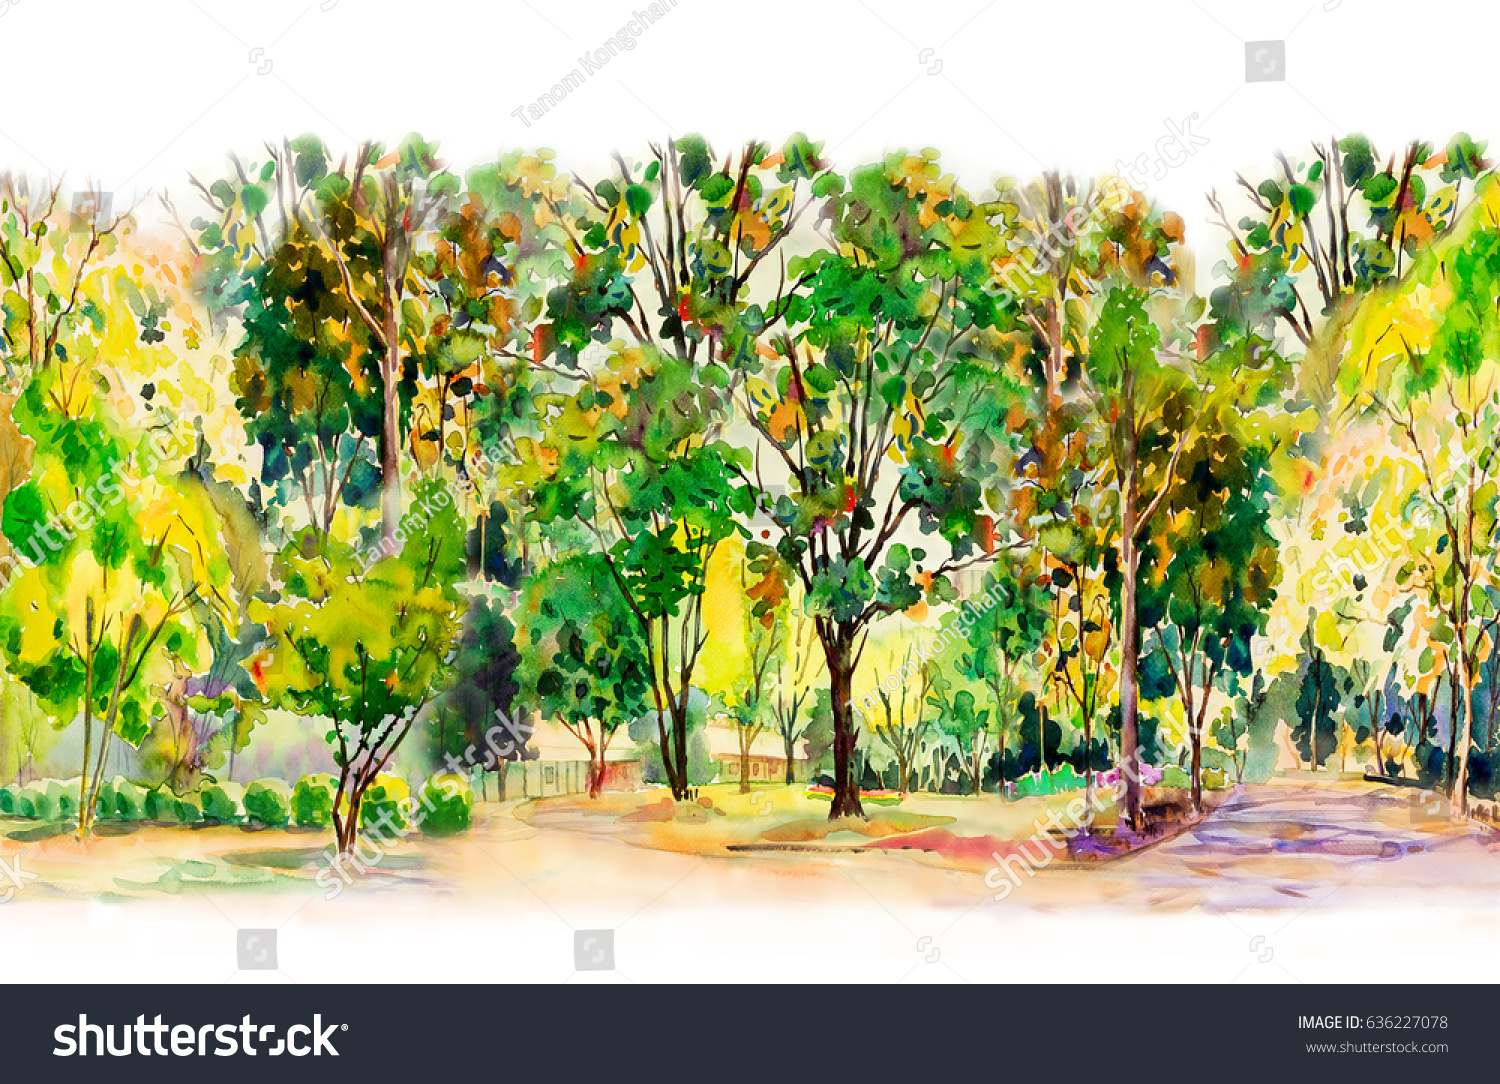 Watercolor Painting Colorful Flowers Garden Trees Stock Illustration ...